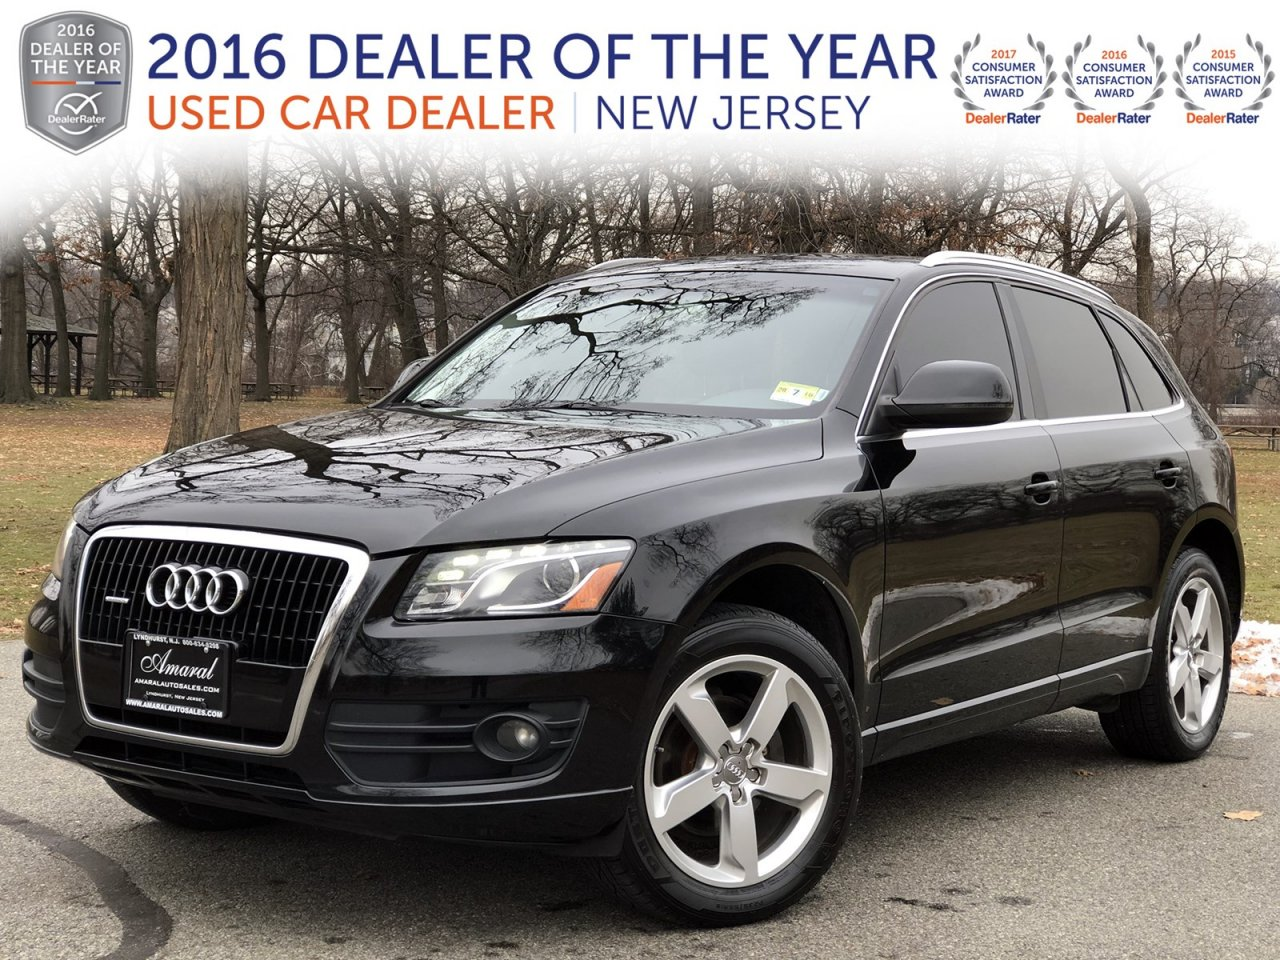 ca audi review of expert used autotrader vehicle reviews